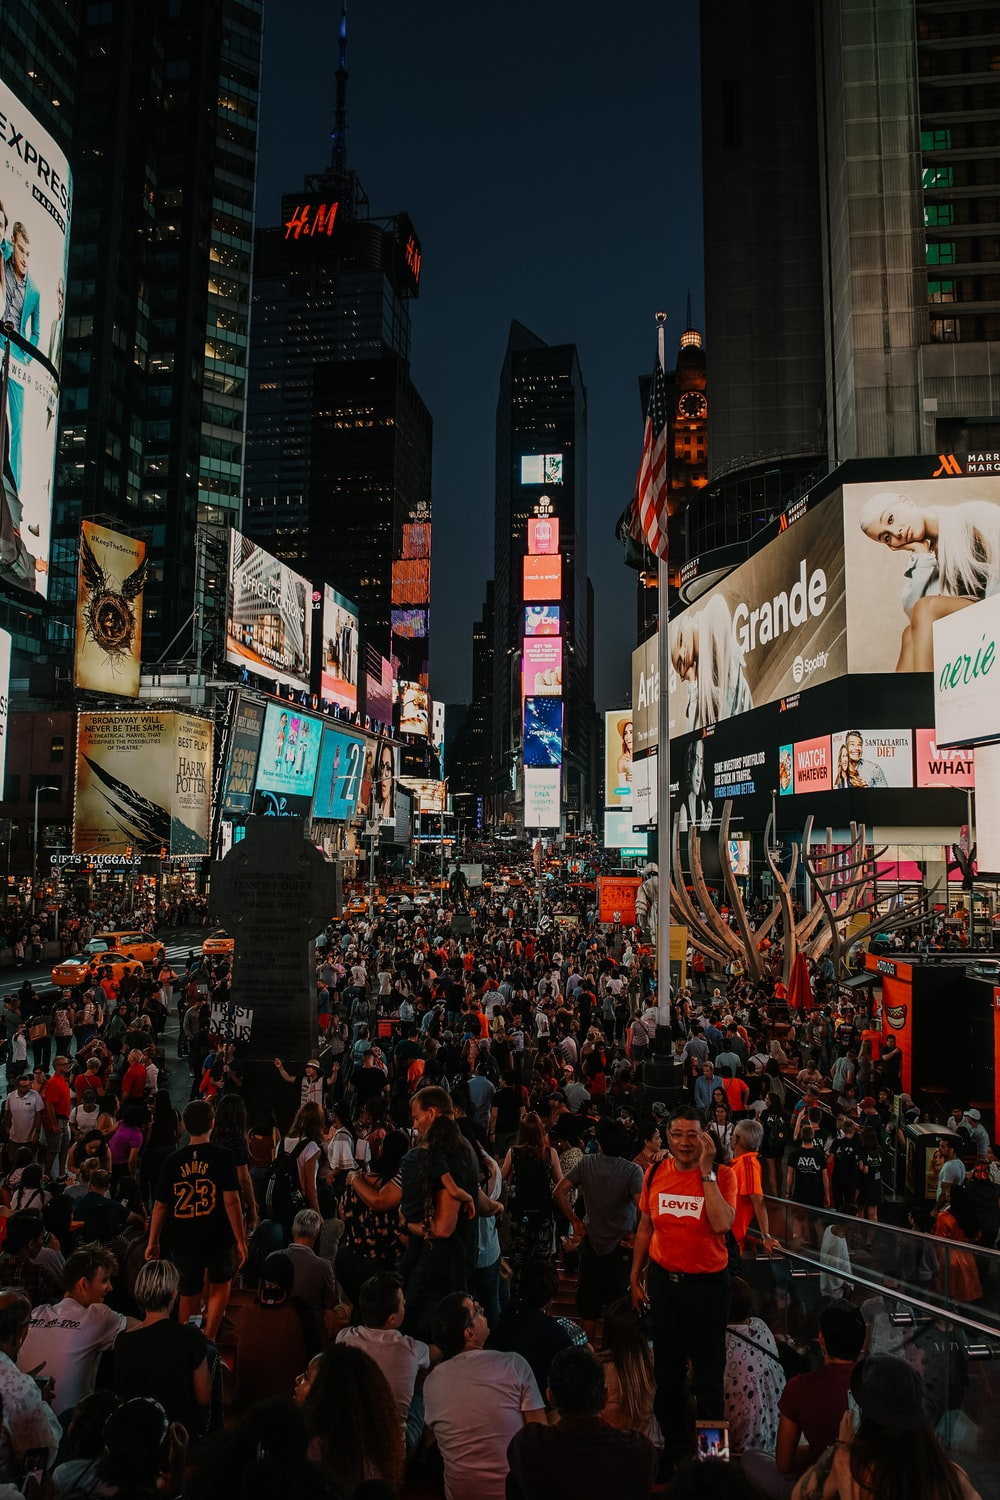 huge crowd of people at New York Times Square at night